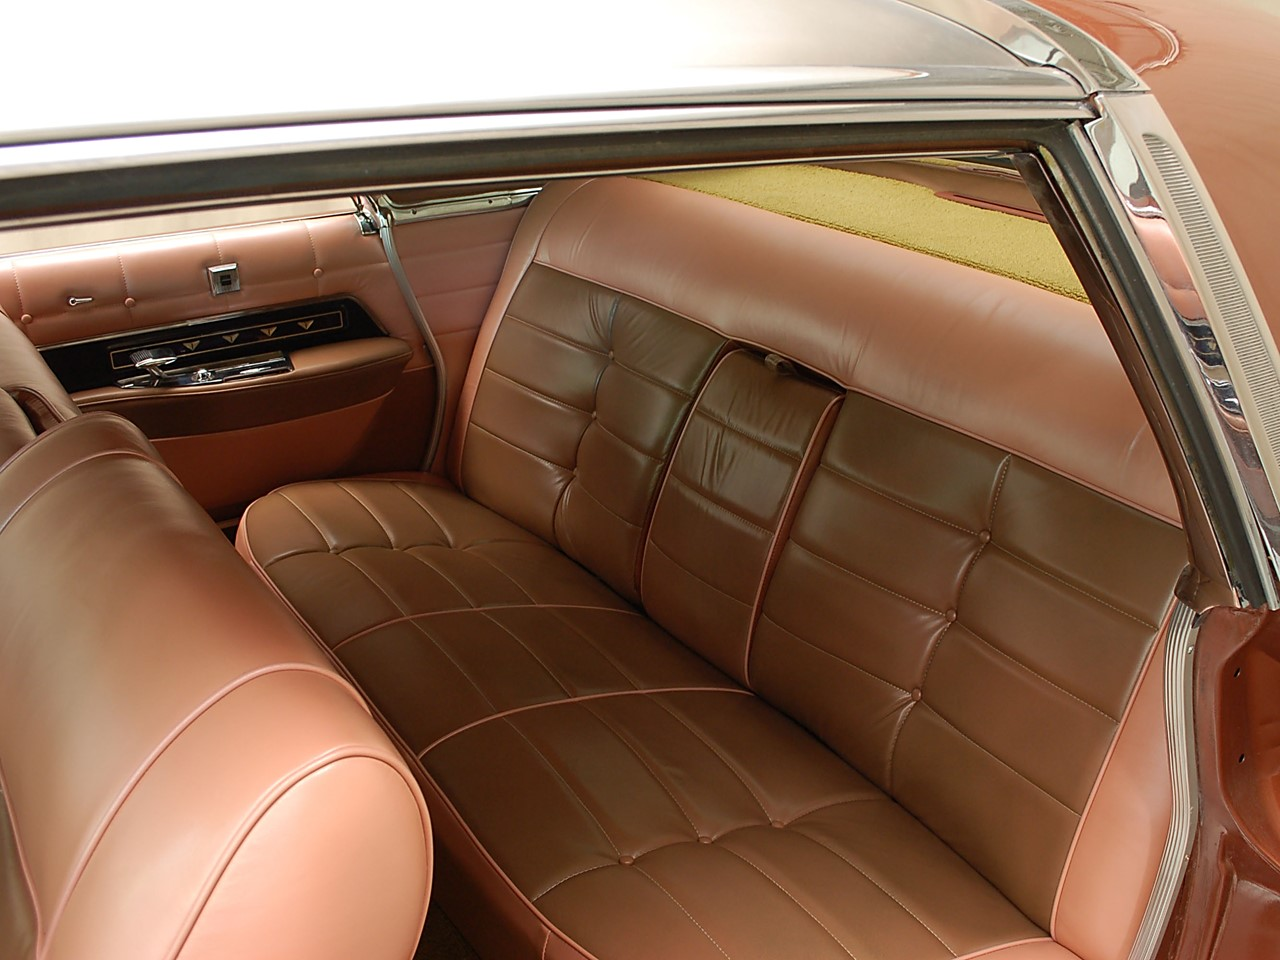 1961 Imperial LeBaron | NotoriousLuxury